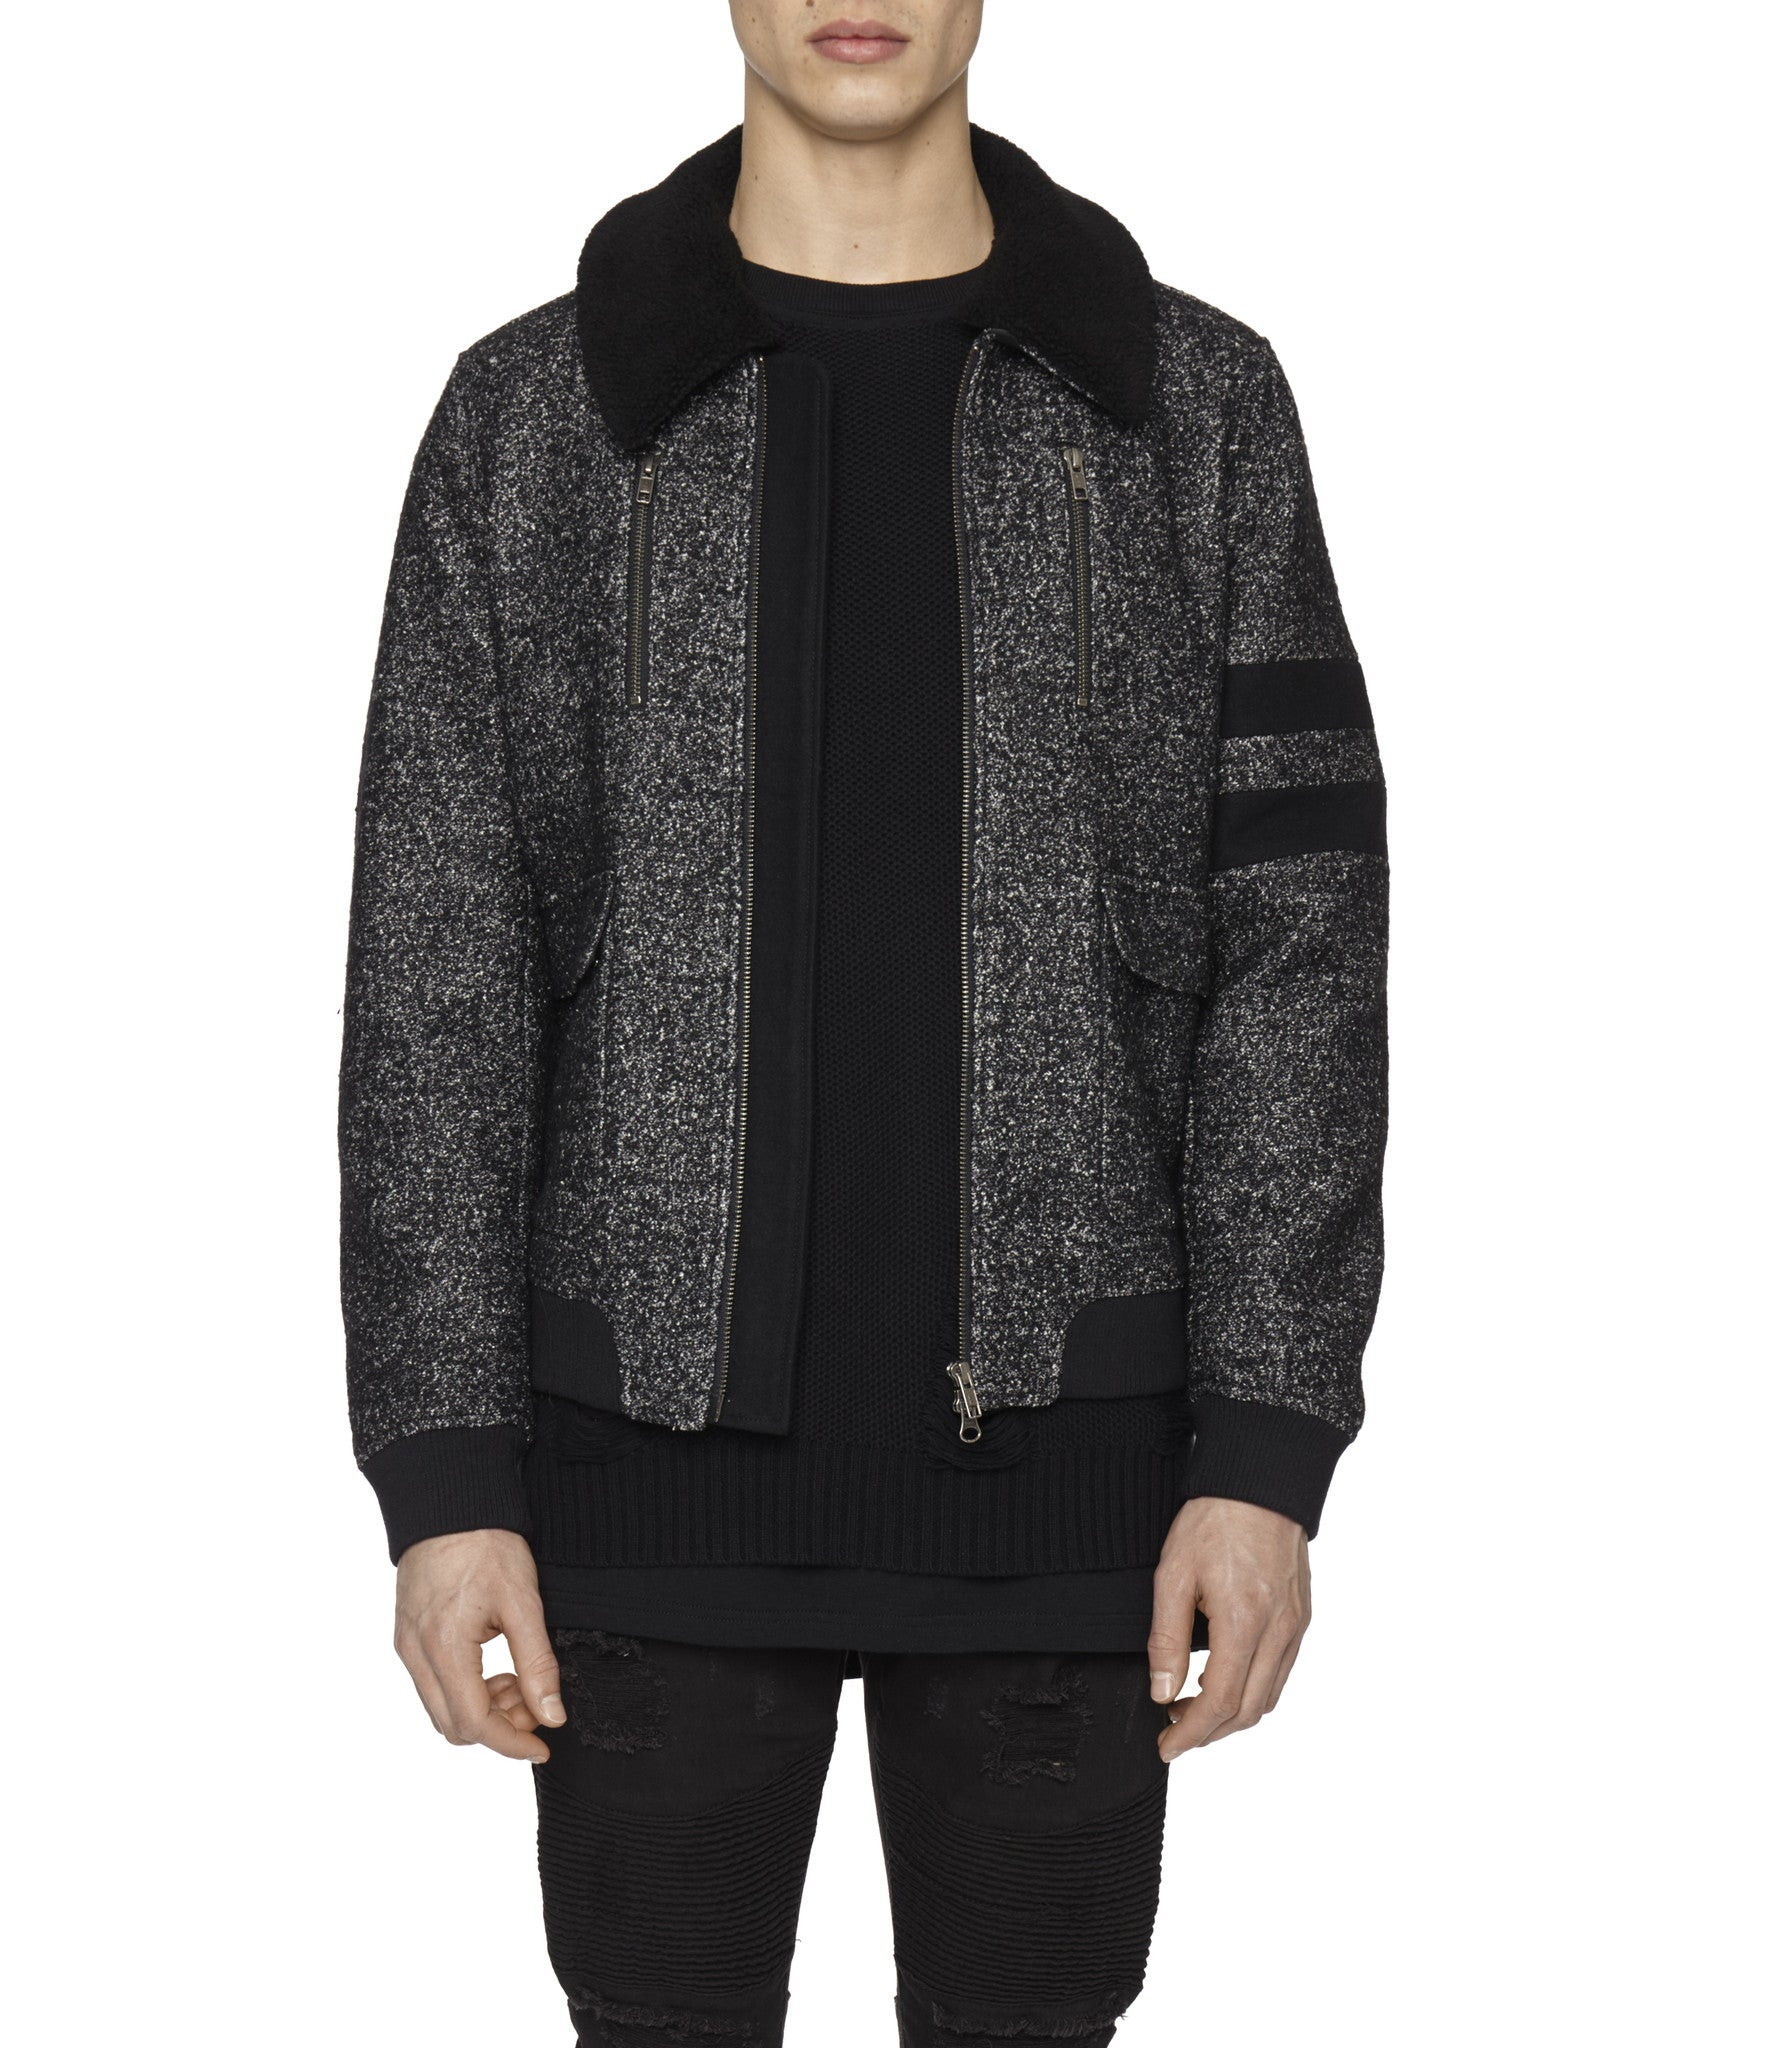 JK225 Shearling-Trimmed Mélange Wool Jacket - Black - underated london - underatedco - 5